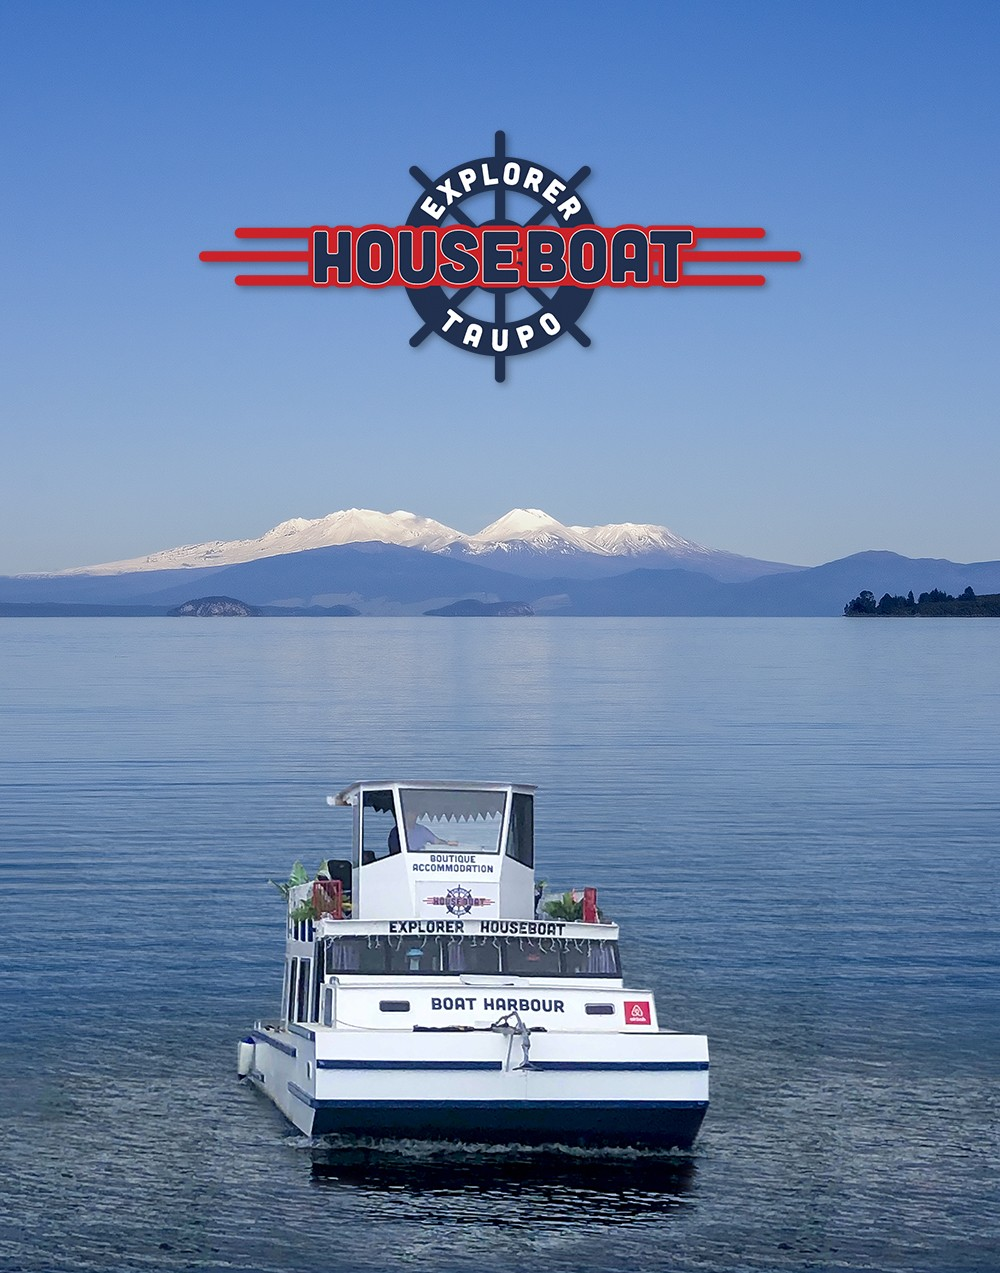 Explorer on Lake Taupo